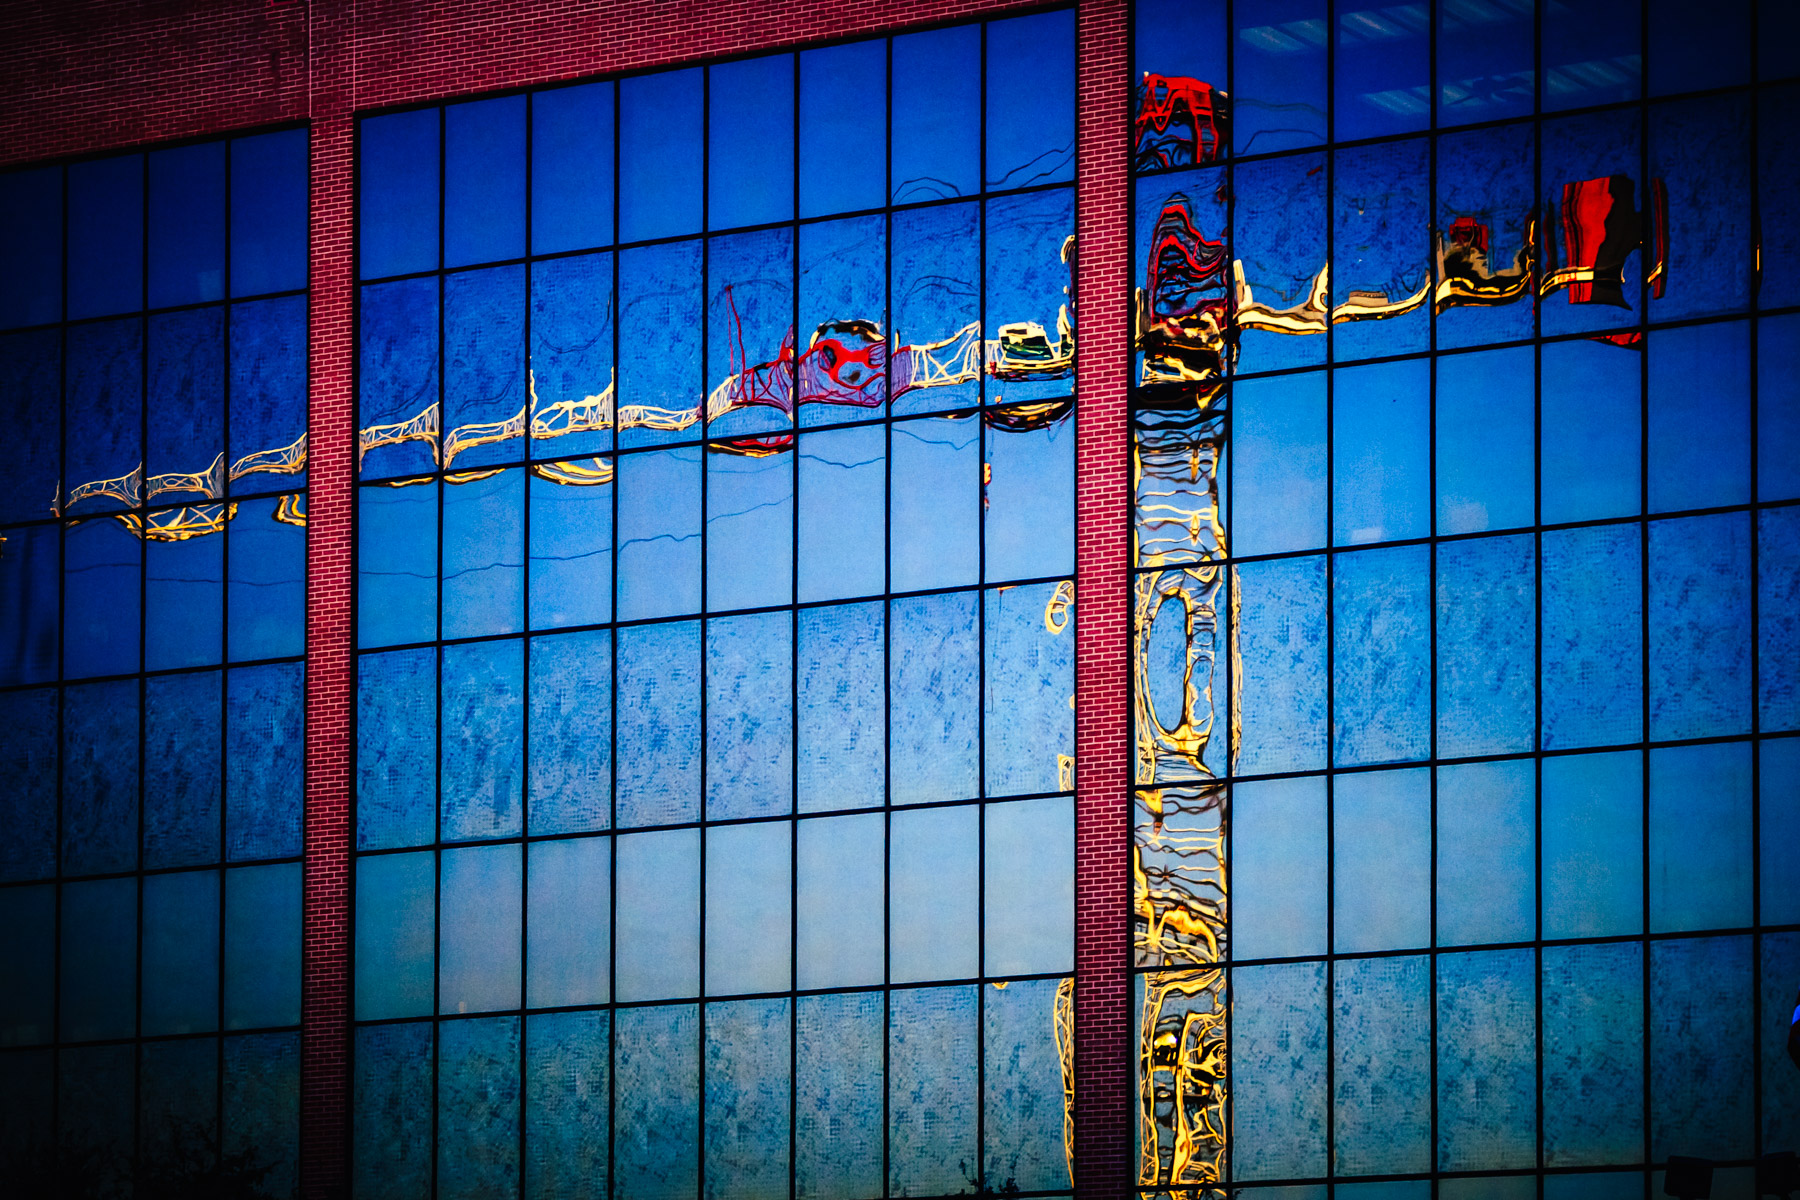 A tower crane reflected in the windows of an adjacent building in Downtown Fort Worth, Texas.